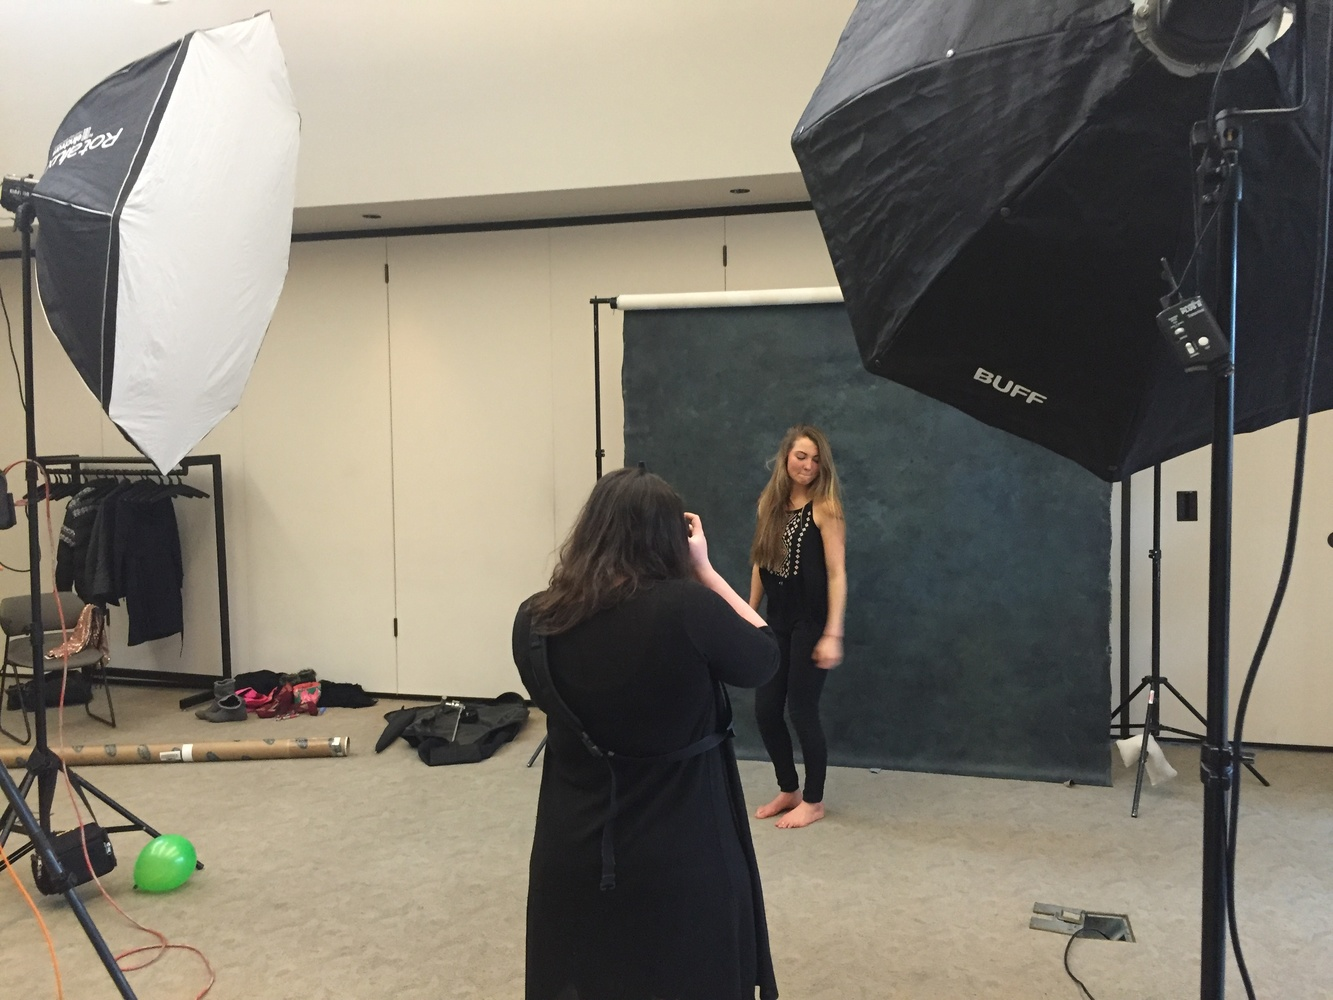 Six Ways To Find Free Or Affordable Studio Space Fstoppers